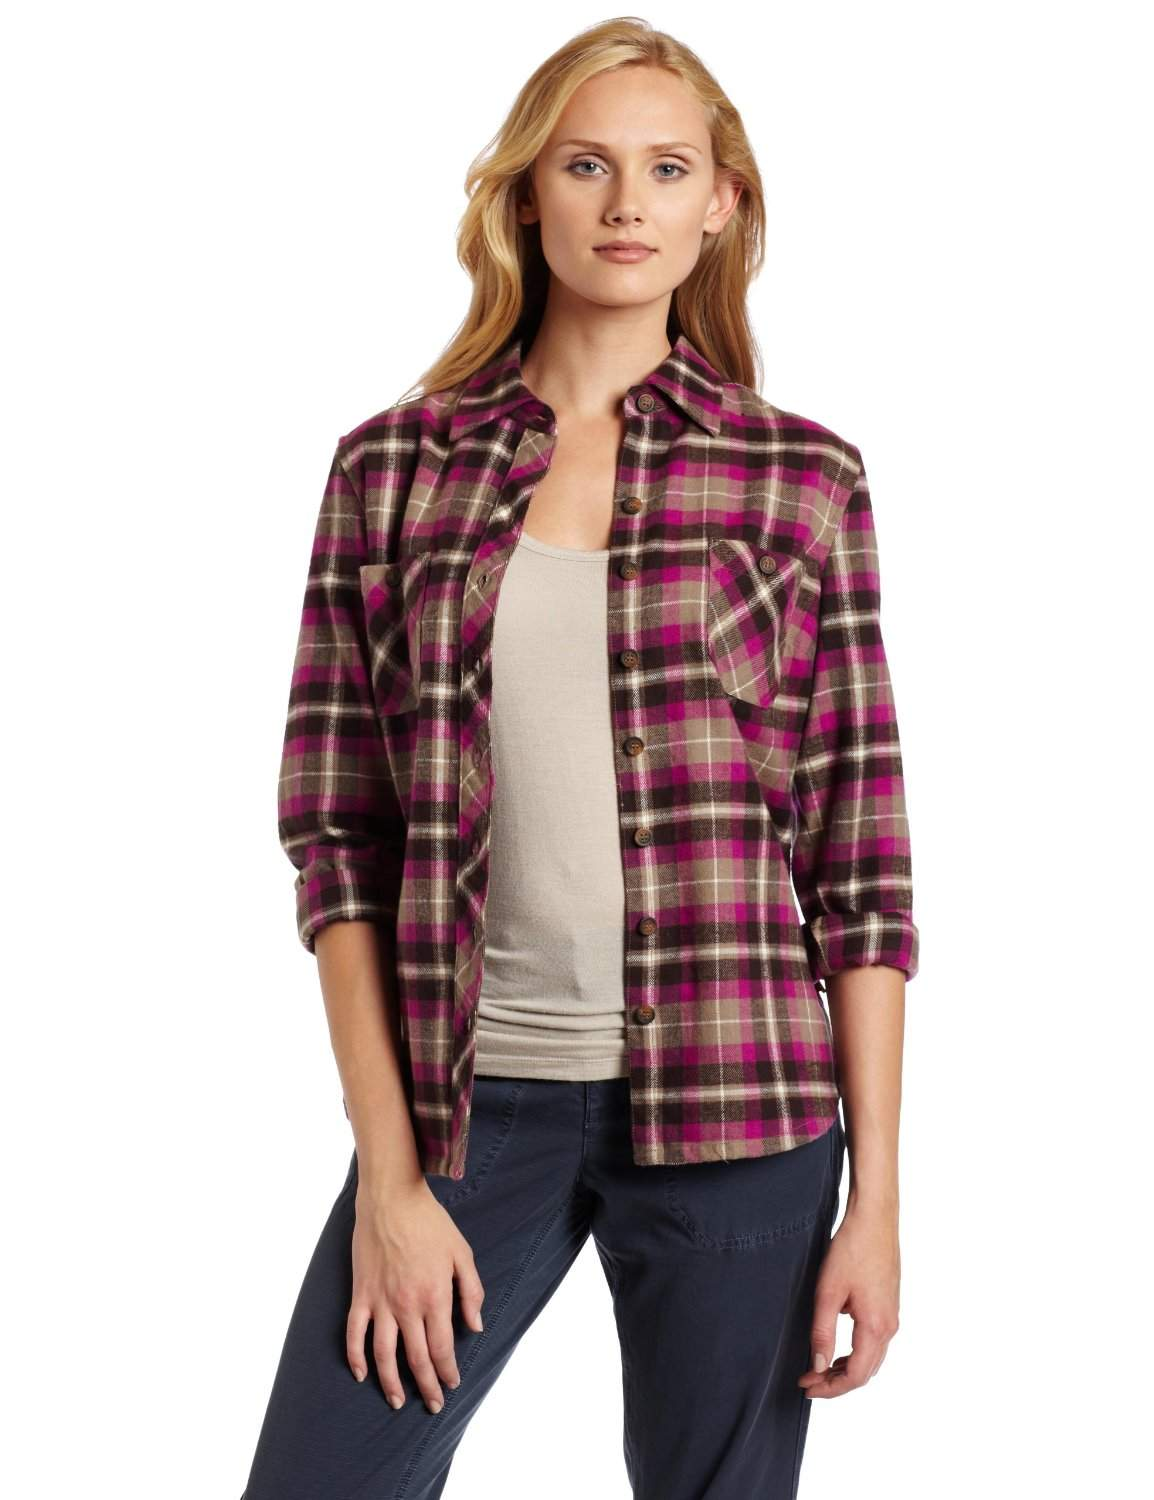 Women Plaid Shirt, Ladies Casual Roll up Sleeve Button Down Boyfriend Shirt. from $ 18 99 Prime. out of 5 stars ZANZEA. Women Blouses Tops Buffalo Check Plaid Long Sleeve Collar Neck Casual Button Down Shirts. from $ 19 99 Prime. out of 5 stars Sysea. Women's Plaid Shirt Off The Shoulder Slouchy Pullover.